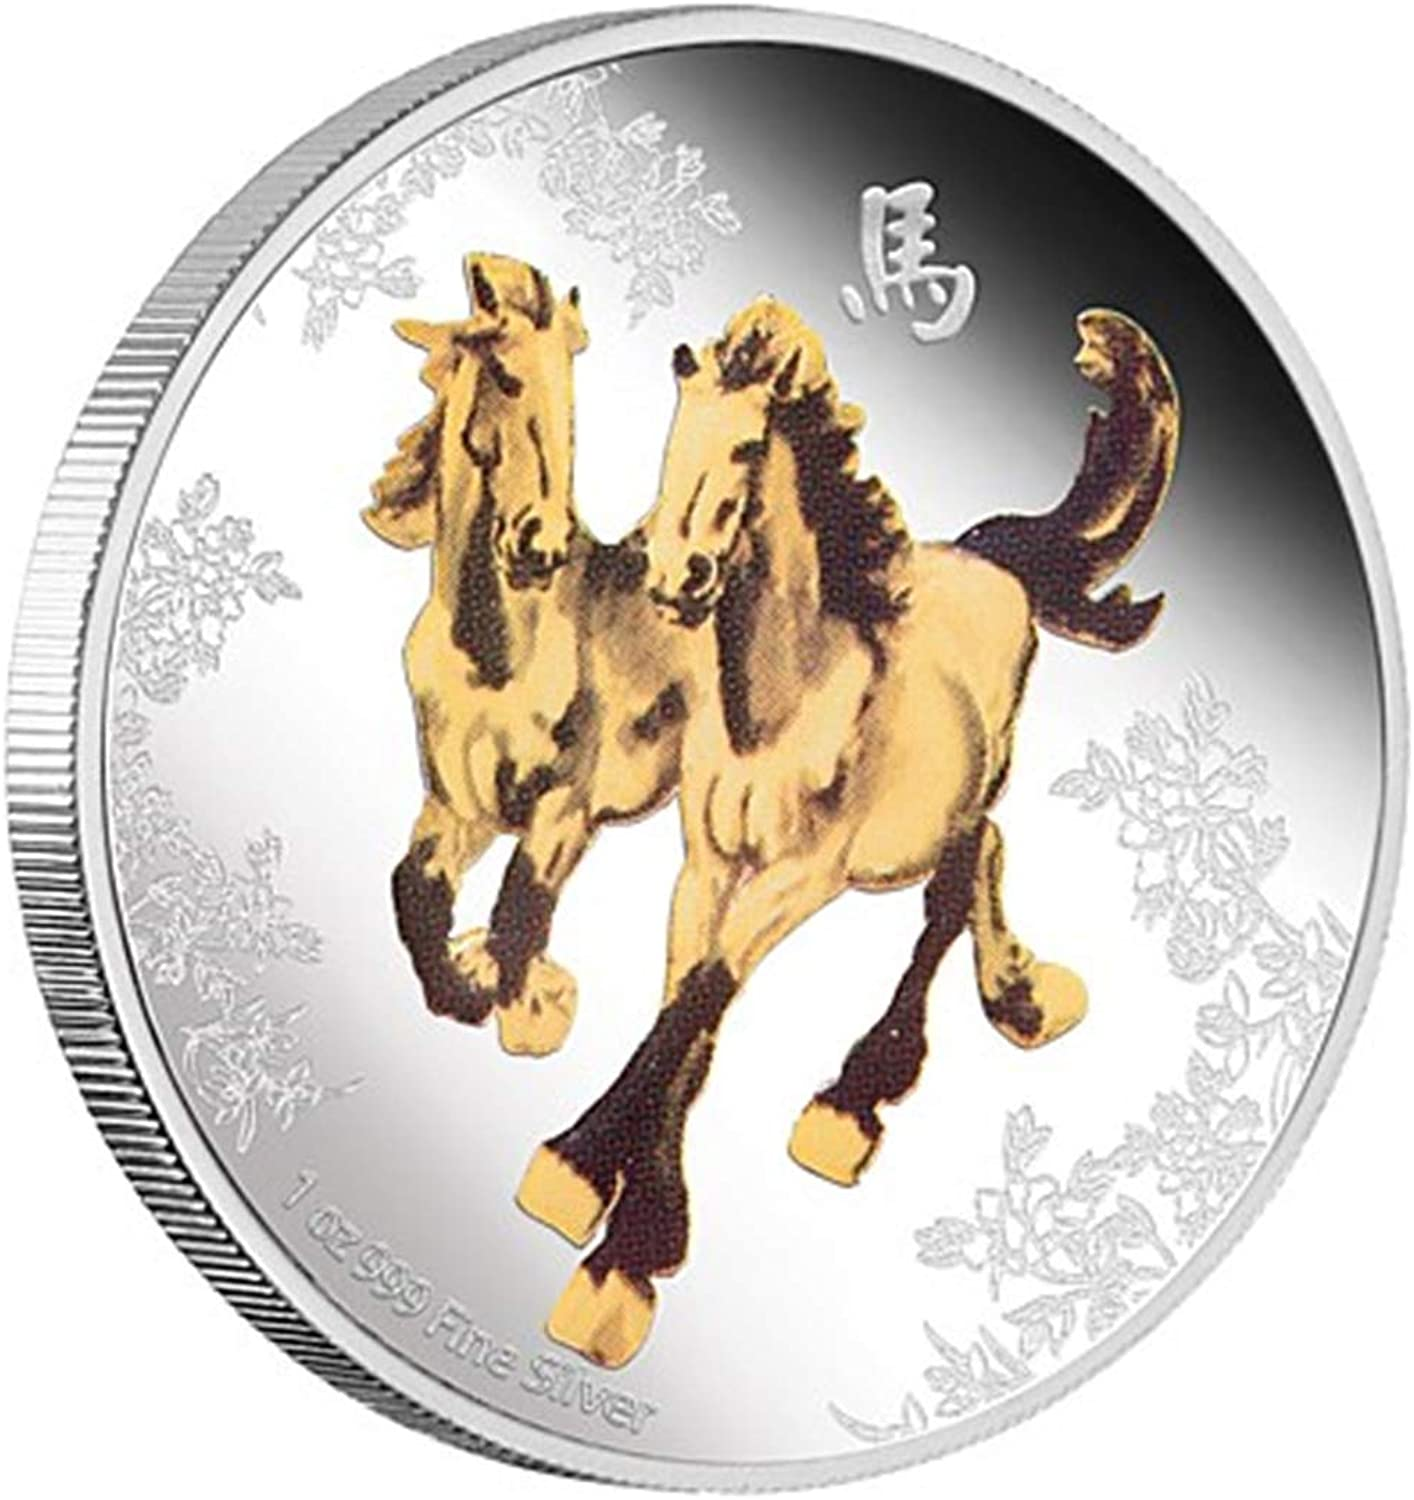 2014 Nation of Niue Feng Shui Proof Silver Horses, color Reverse, 1 Troy Oz (31.1g) 999 Pure Silver. 5000 Minted.